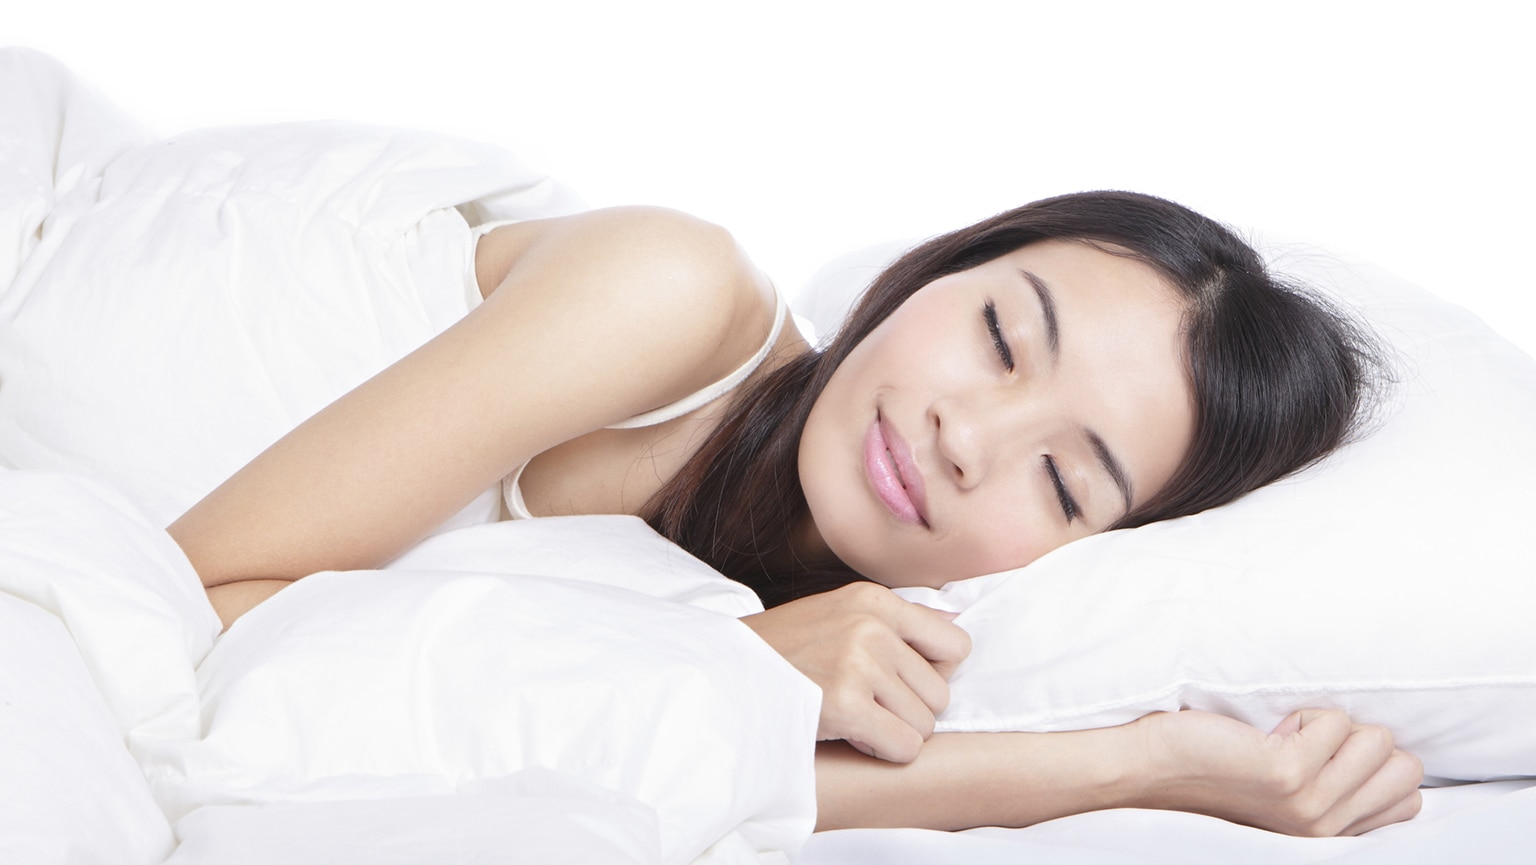 Catching Your Zs—Sleep and Health